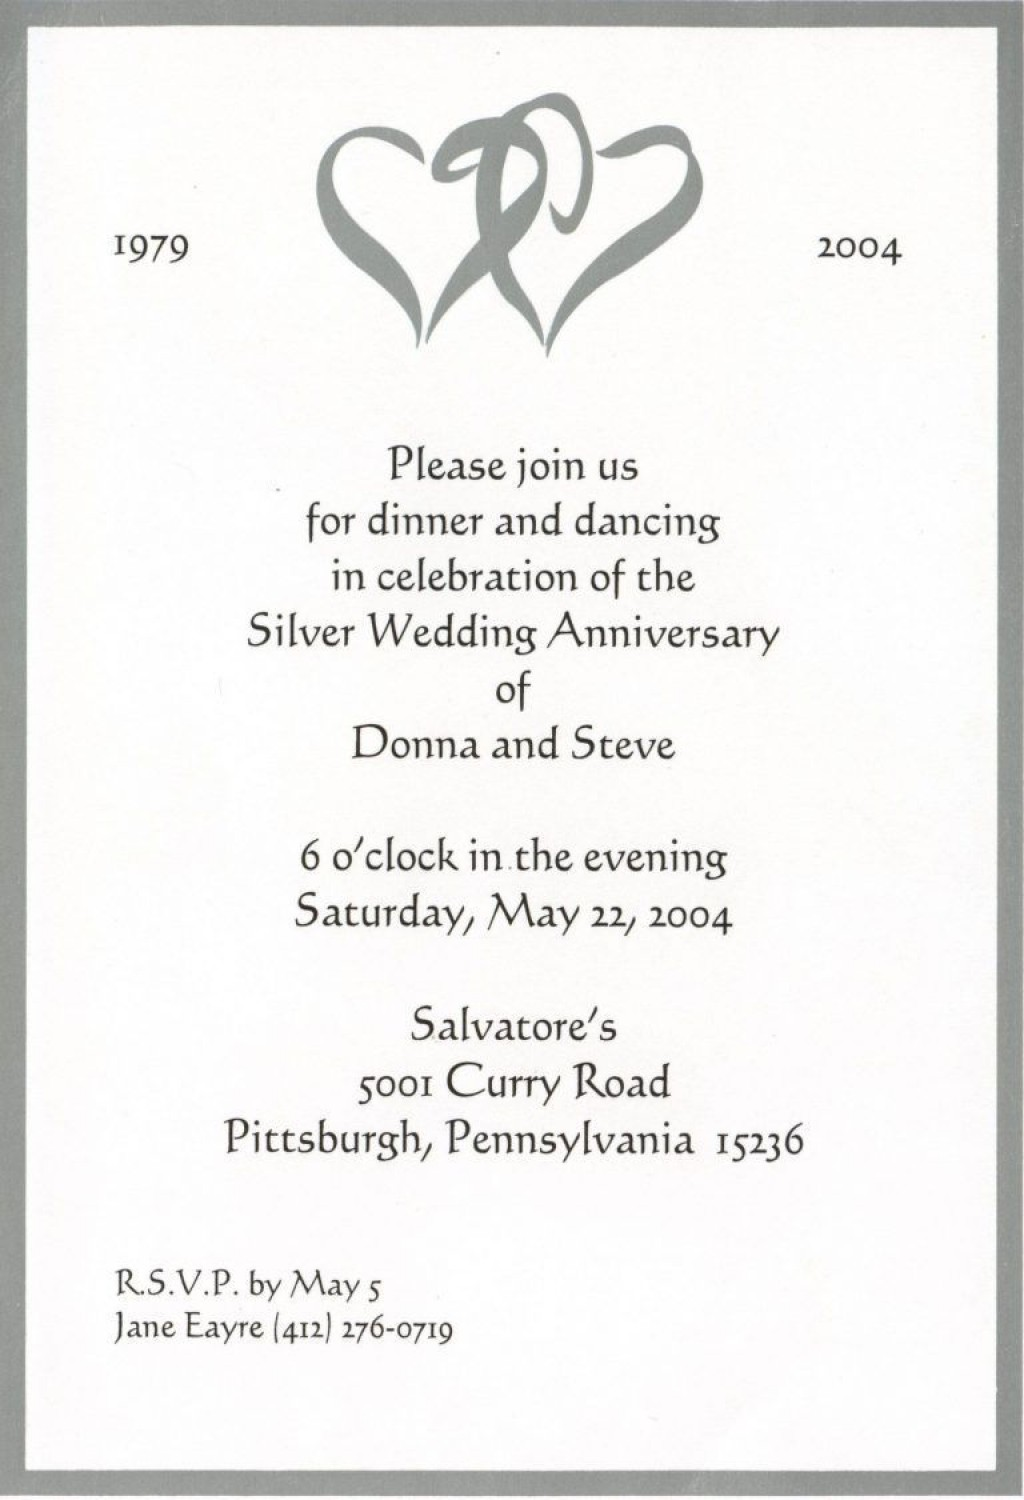 000 Magnificent 50th Wedding Anniversary Party Invitation Template Image  Templates FreeLarge